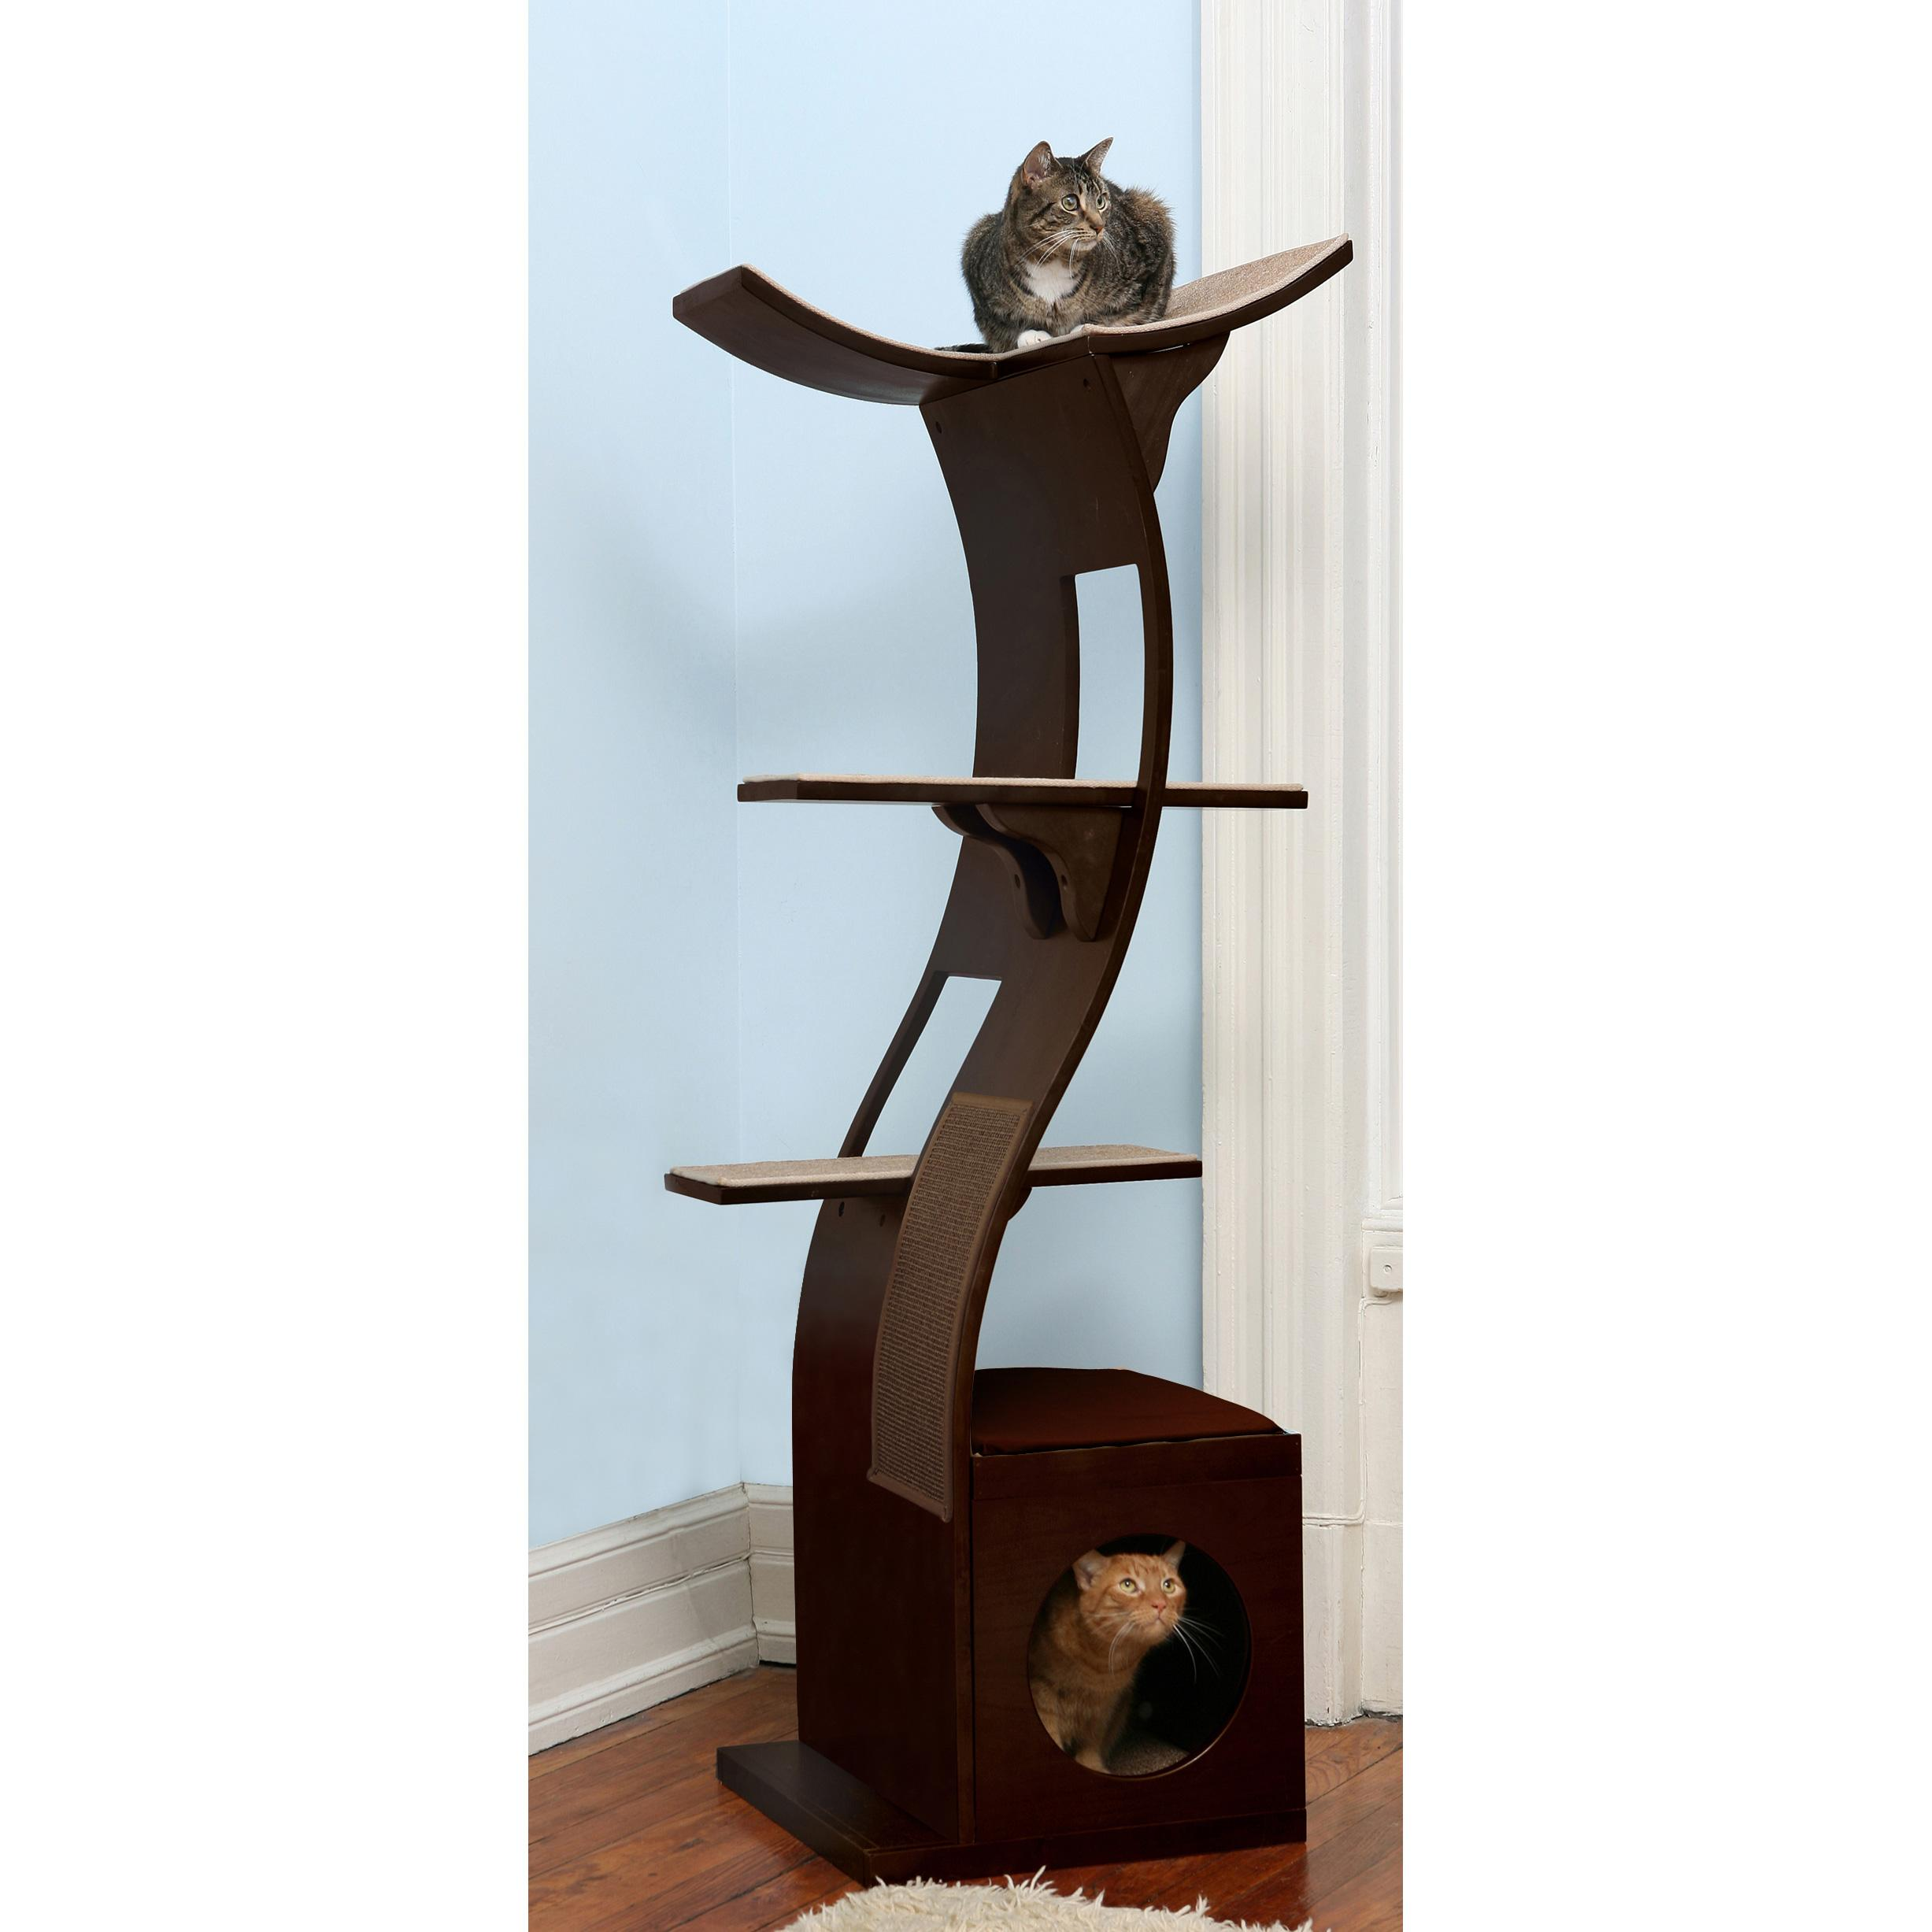 tree shop rakuten post product bestchoiceproducts condo scratching best high furniture cat products quality choice kitten house hammock pet with